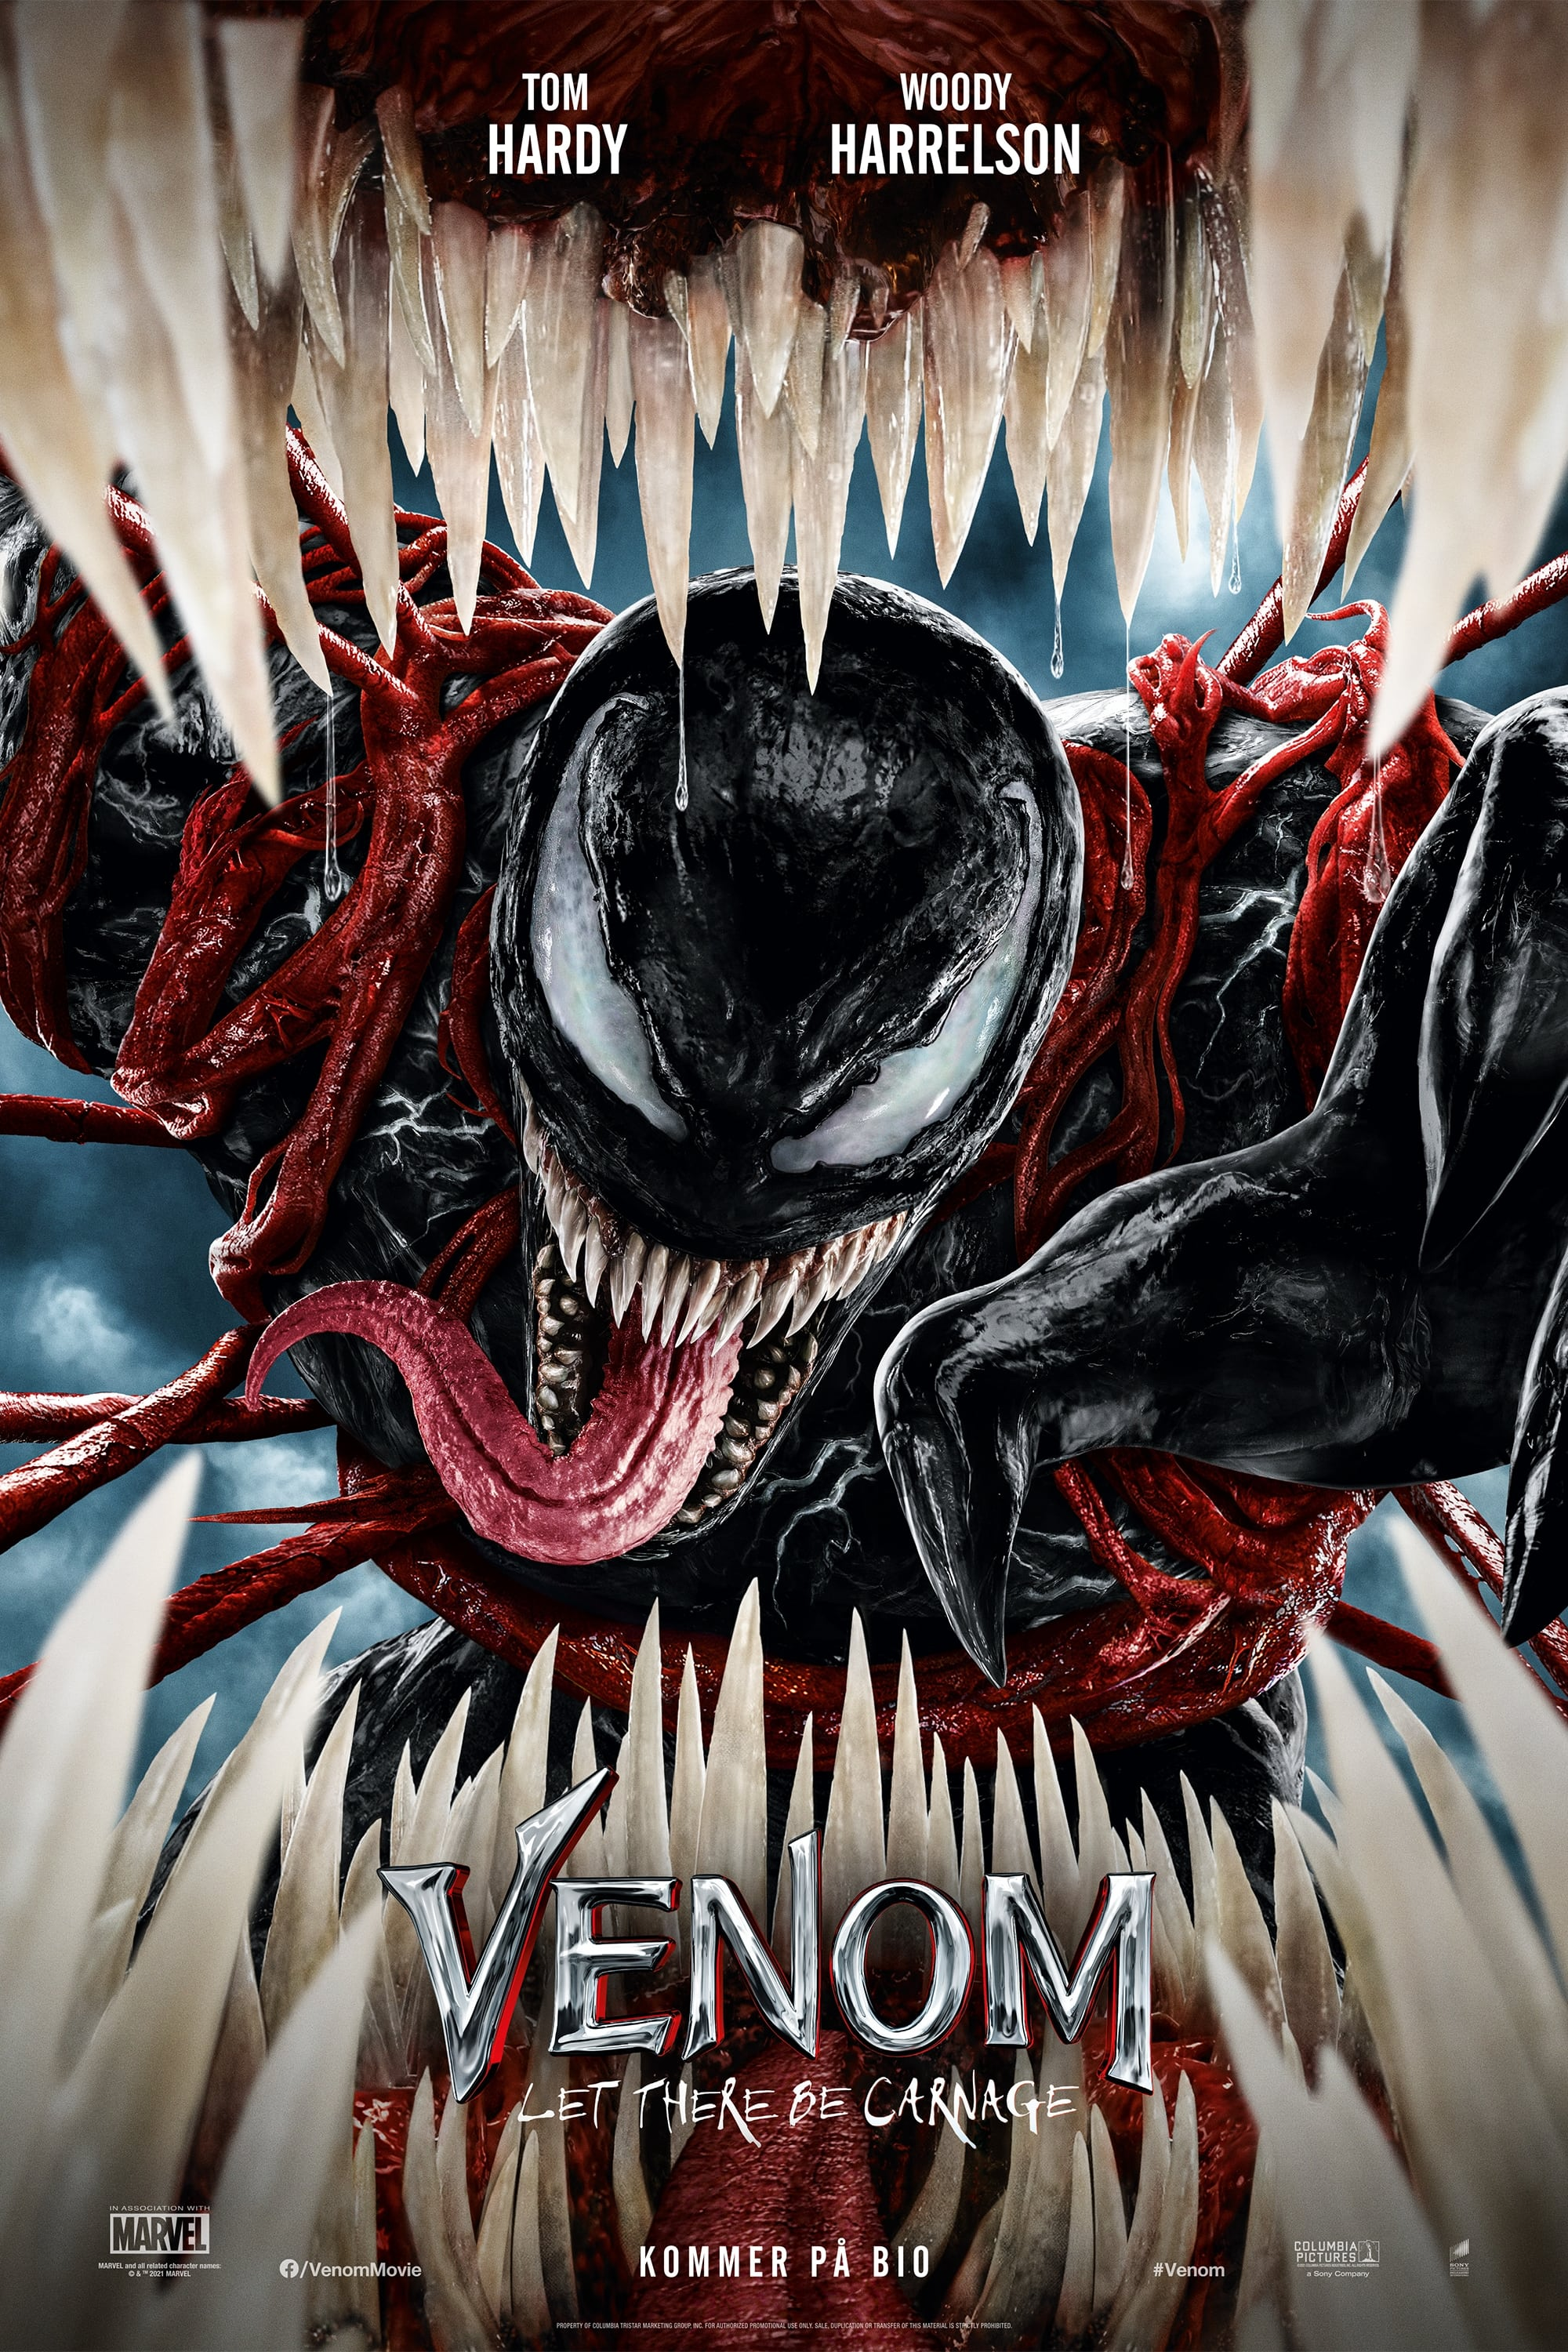 Poster and image movie Venom: Let There Be Carnage